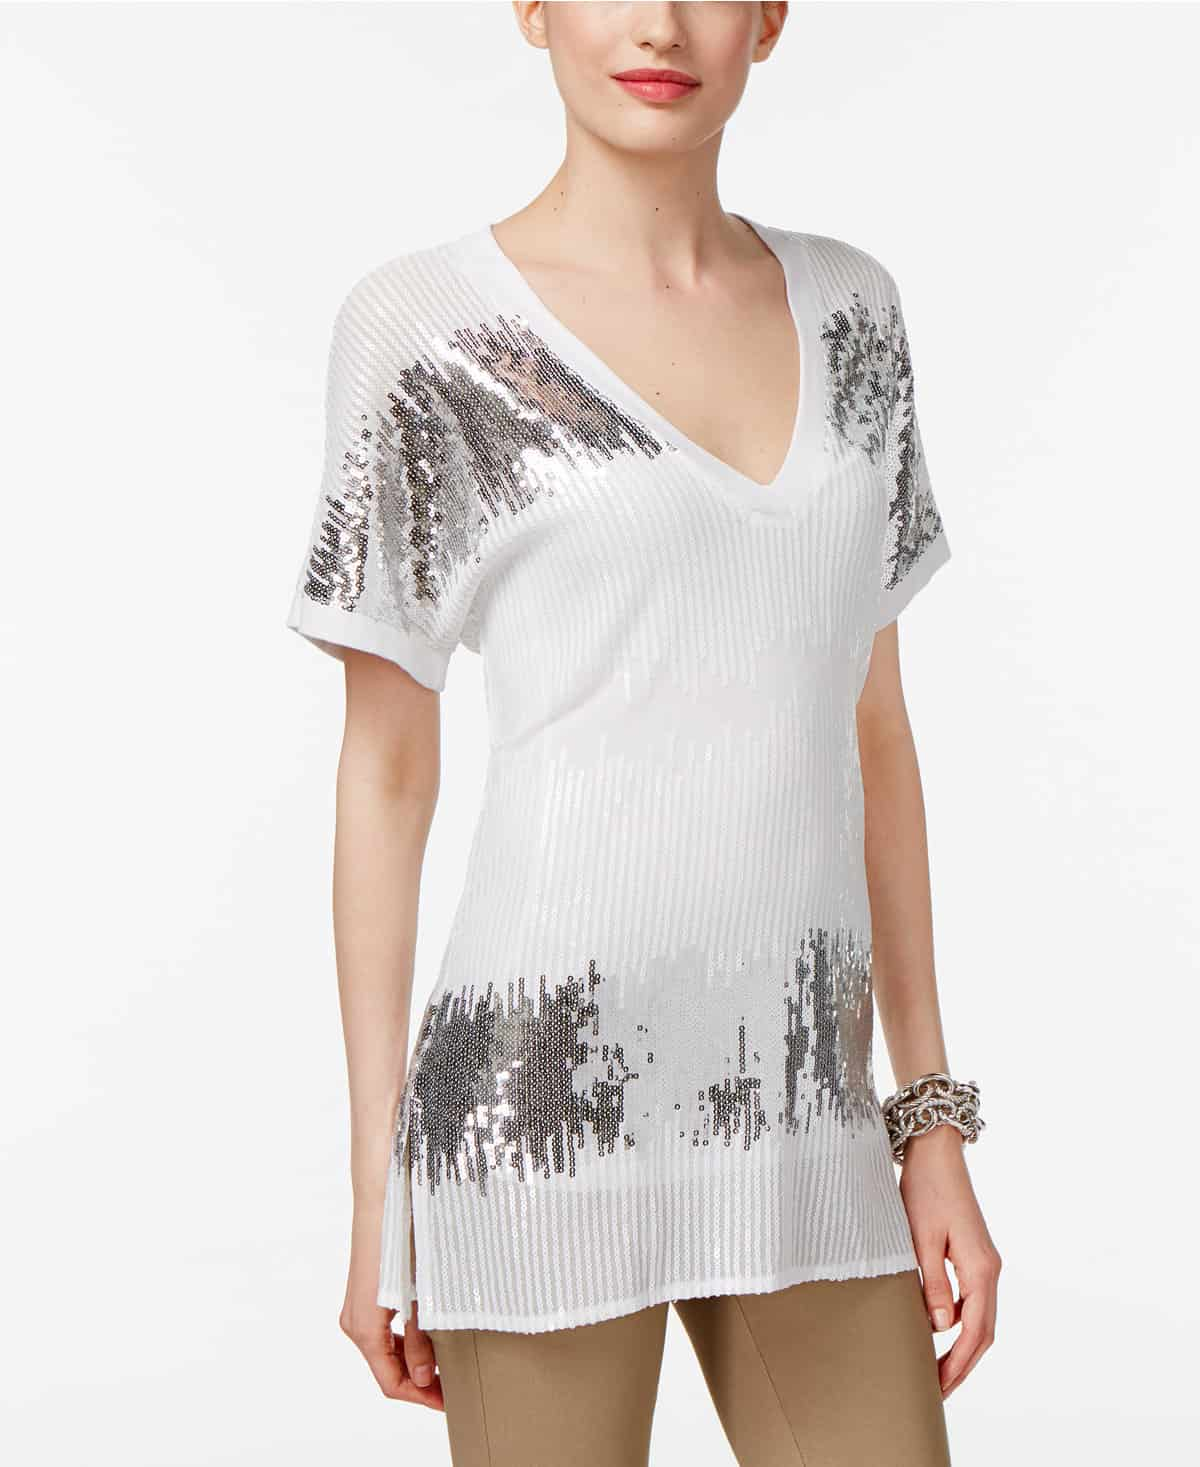 White and silver sequin top